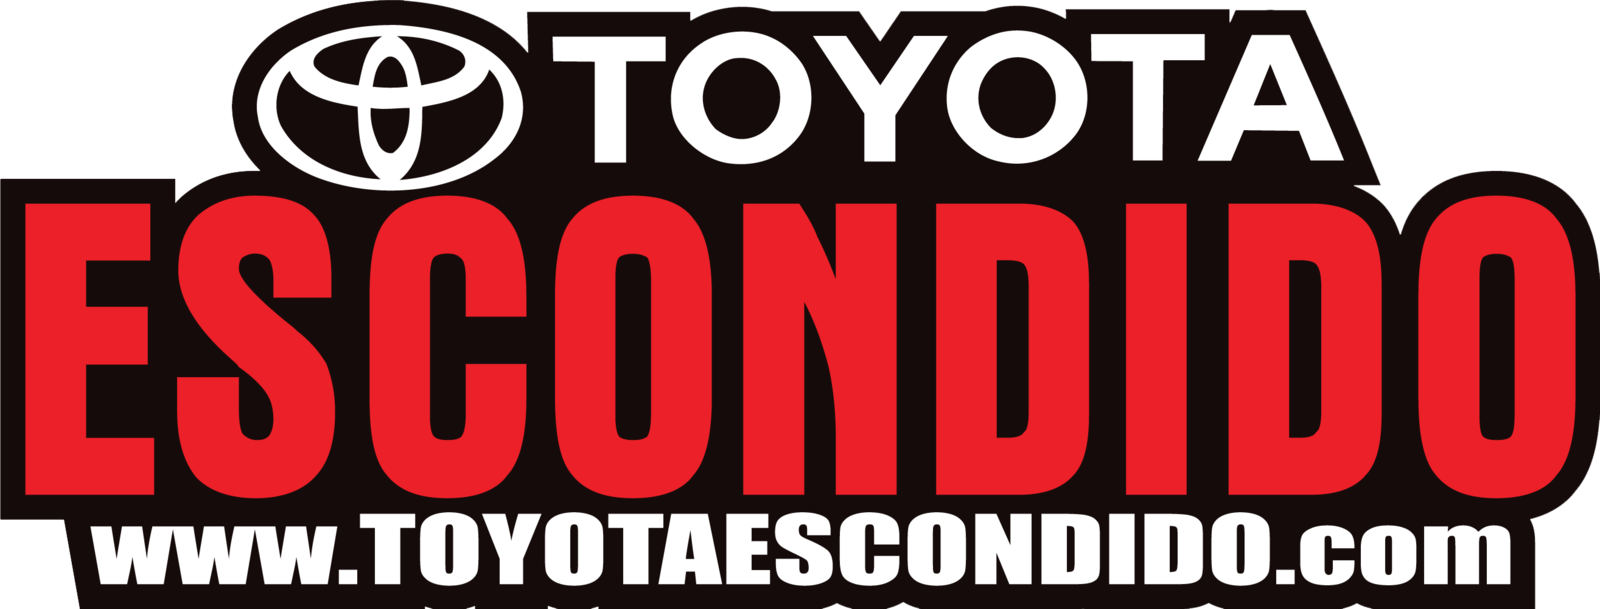 Toyota Of Escondido   Escondido, CA: Read Consumer Reviews, Browse Used And  New Cars For Sale